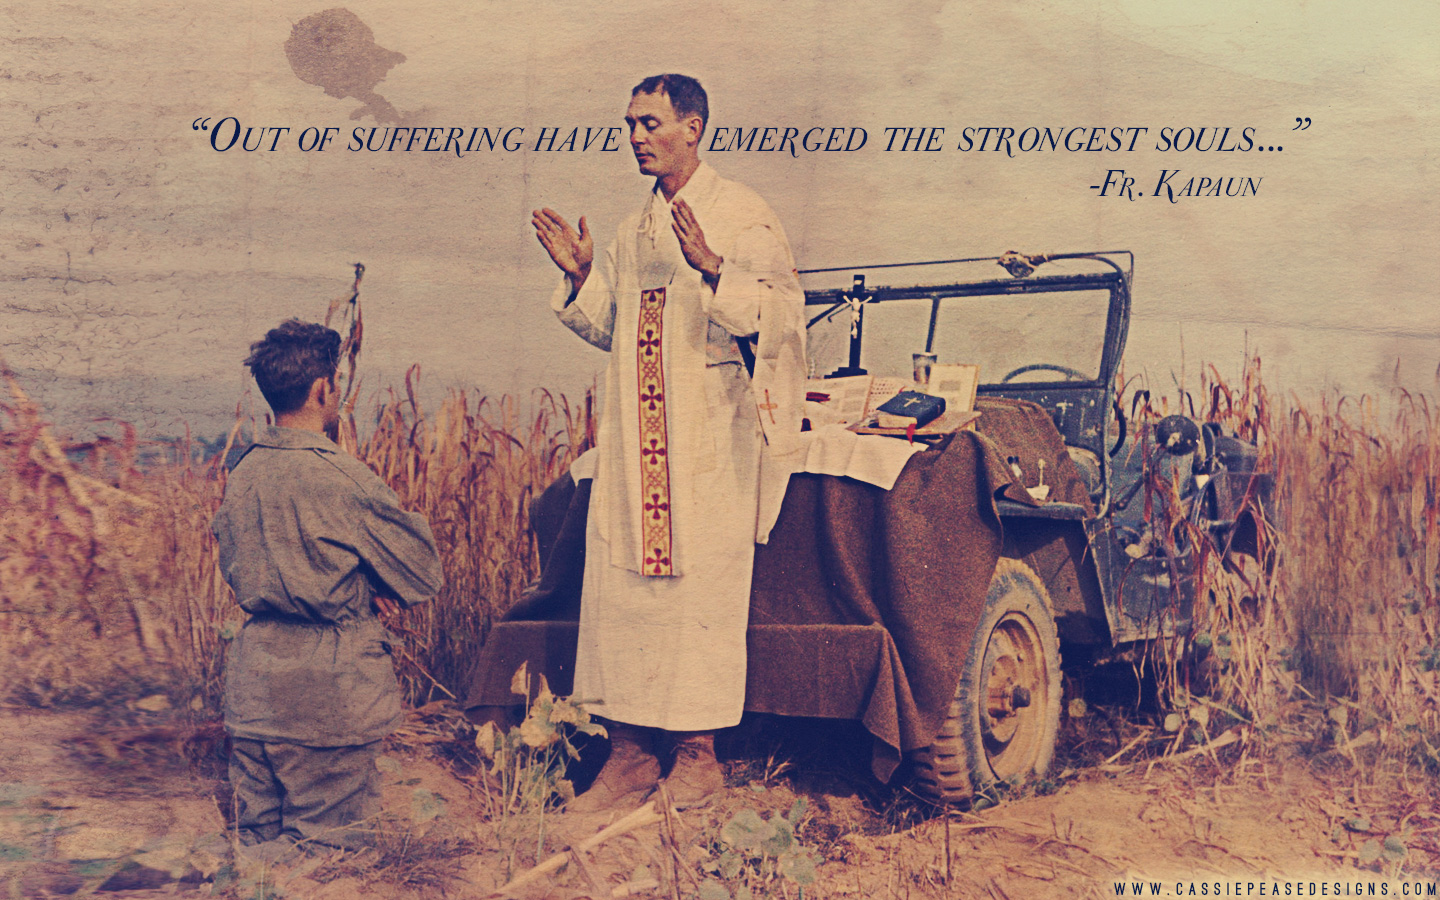 Fr. Kapaun Desktop Wallpaper